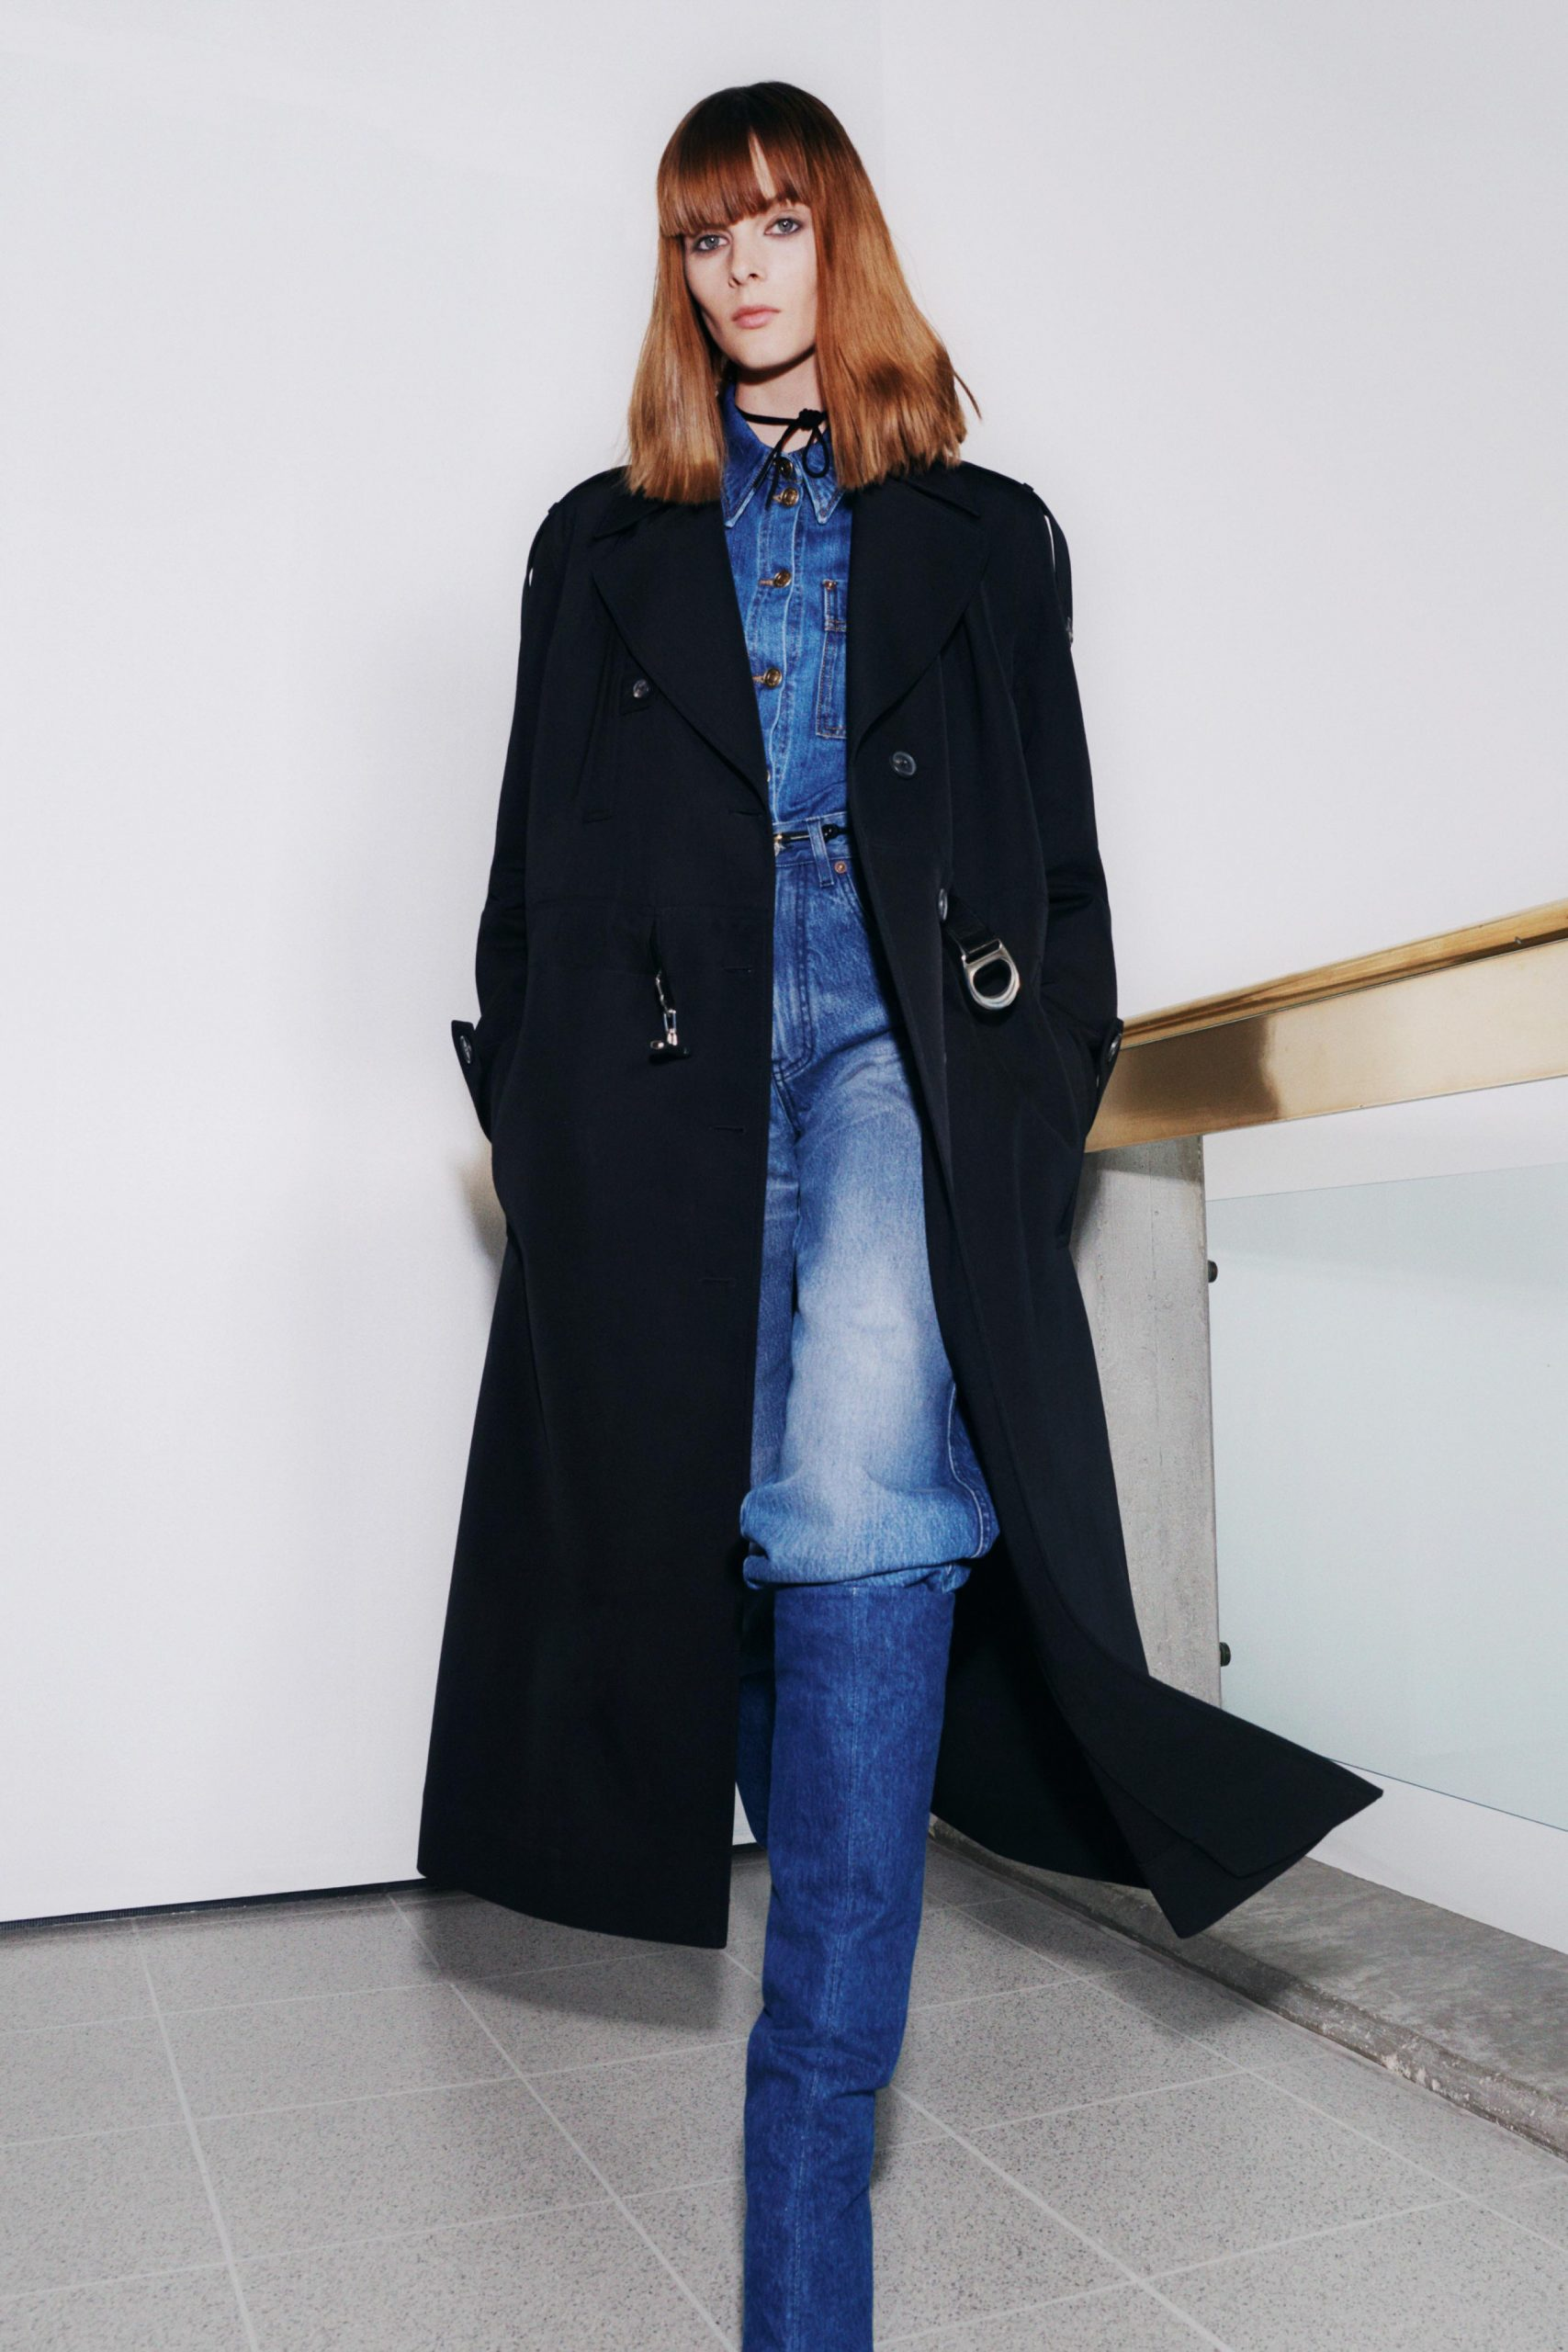 Fashion preview: Victoria Beckham Ready to wear Fall/Winter 2021-22